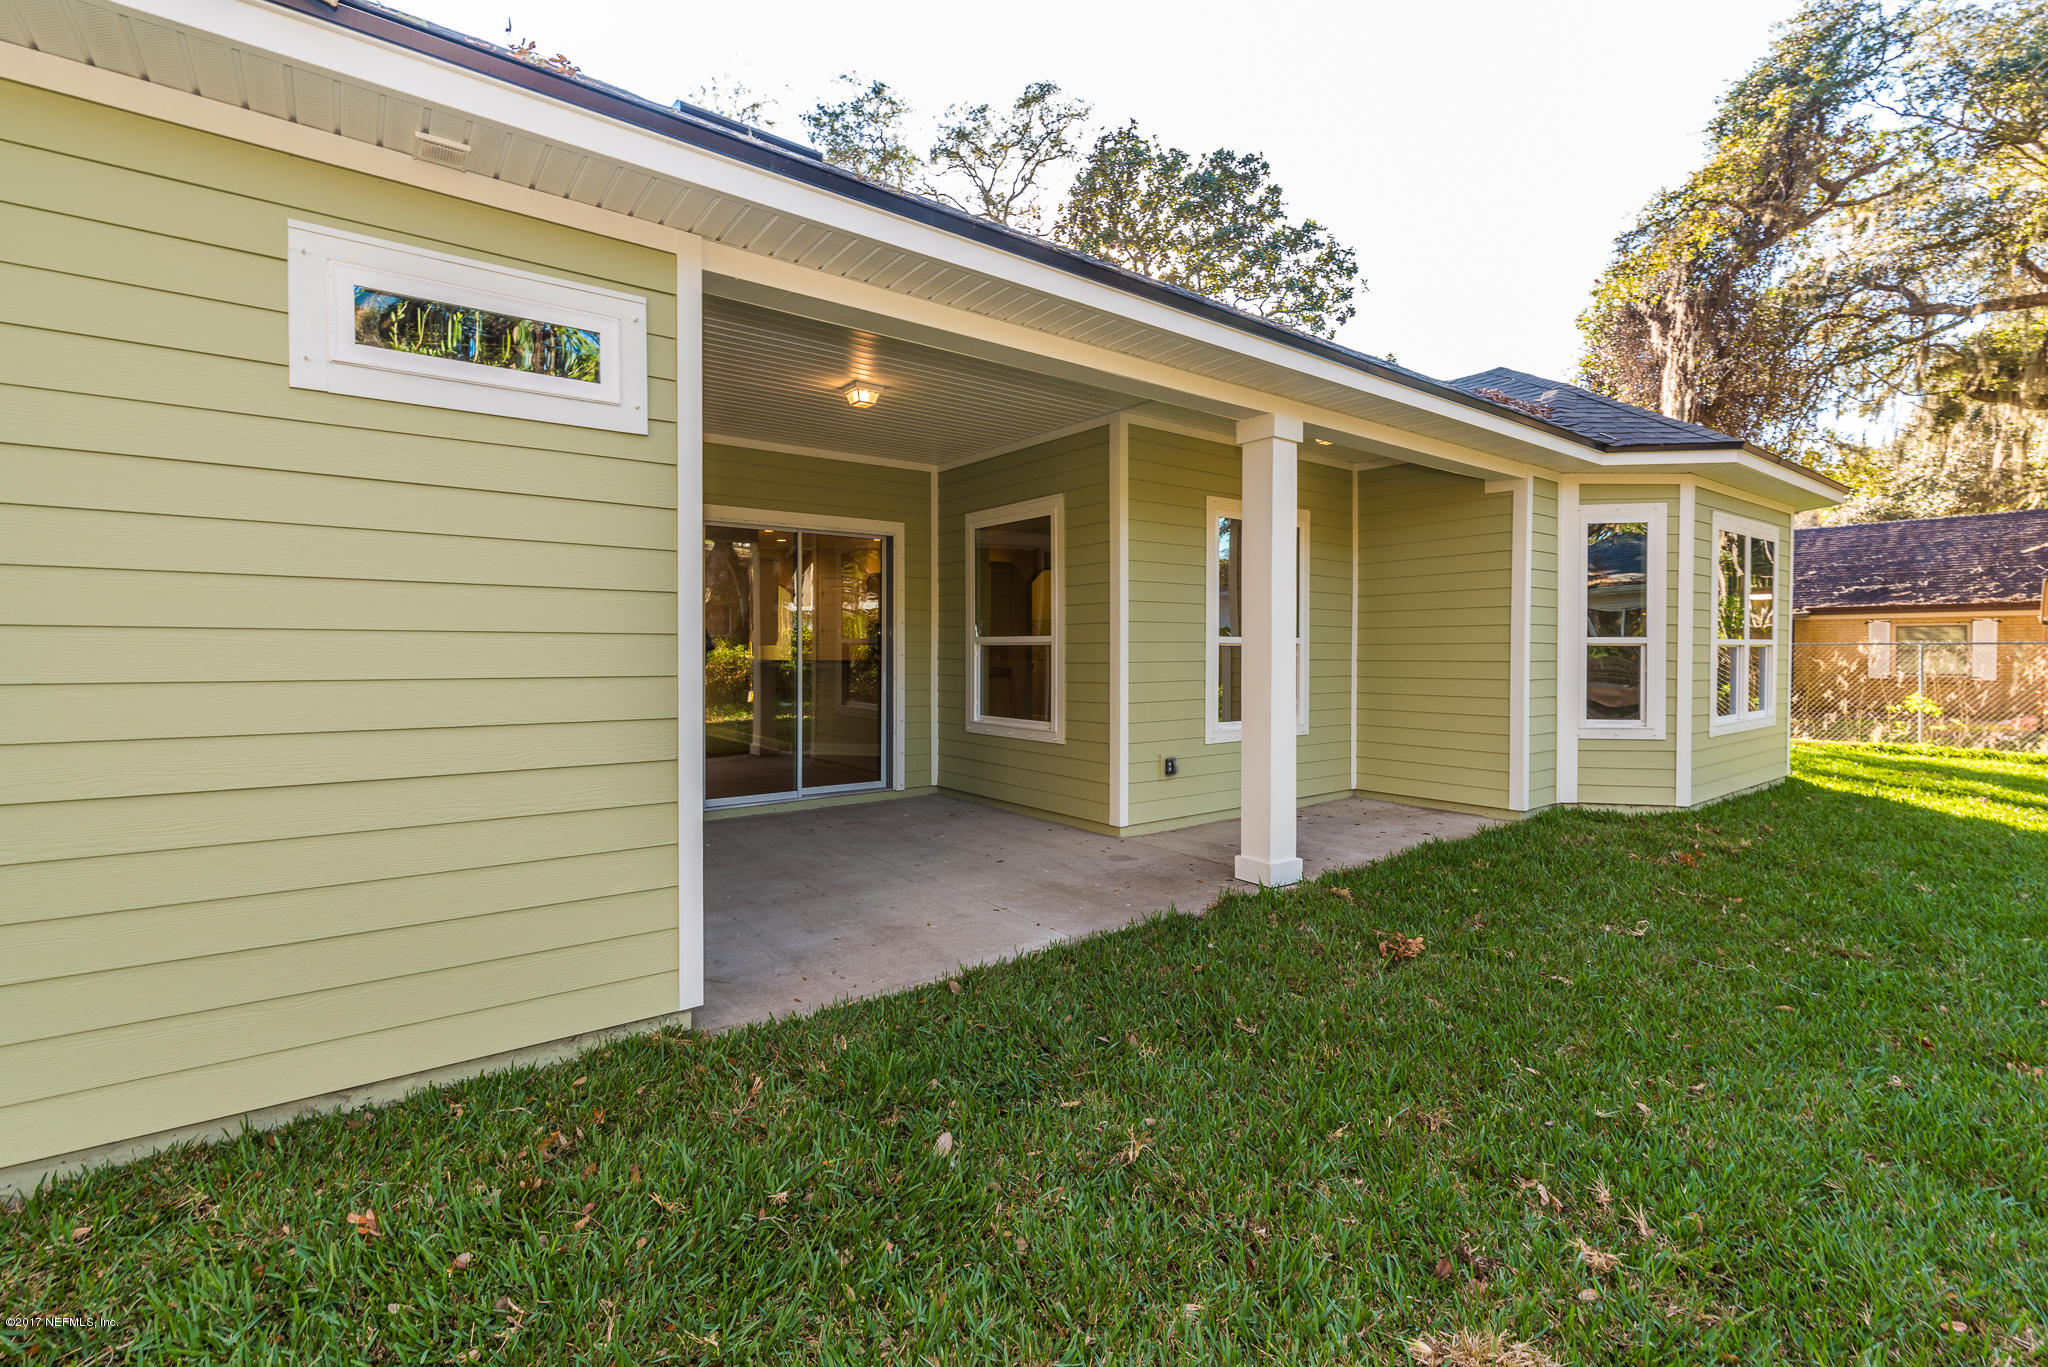 529 TURNBERRY, ST AUGUSTINE, FLORIDA 32080, 4 Bedrooms Bedrooms, ,3 BathroomsBathrooms,Residential - single family,For sale,TURNBERRY,873452